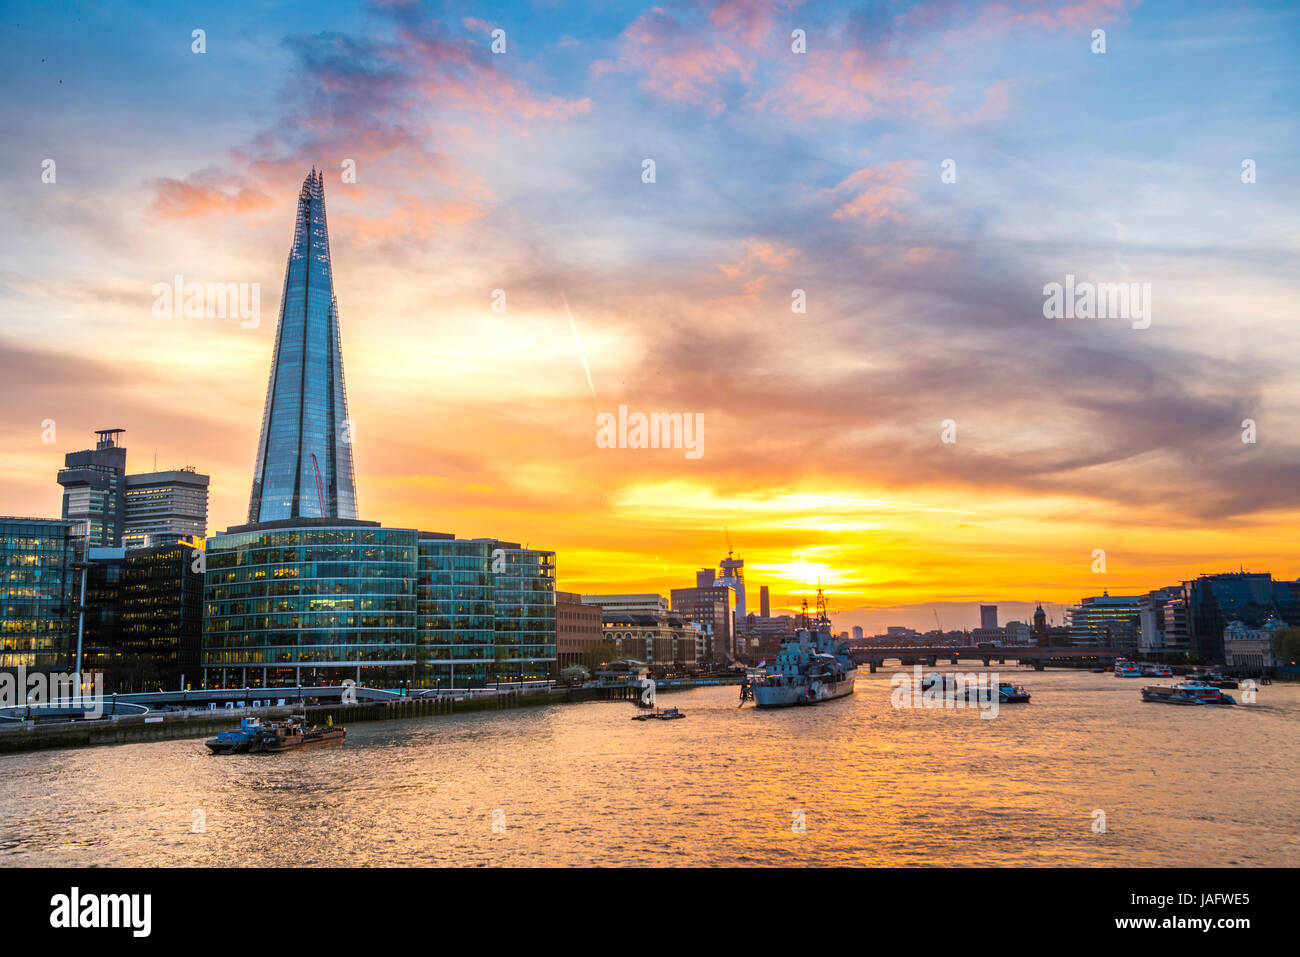 Skyline of the office complex More London Riverside, The Shard, Thames at sunset, Southwark, London, England, United - Stock Image